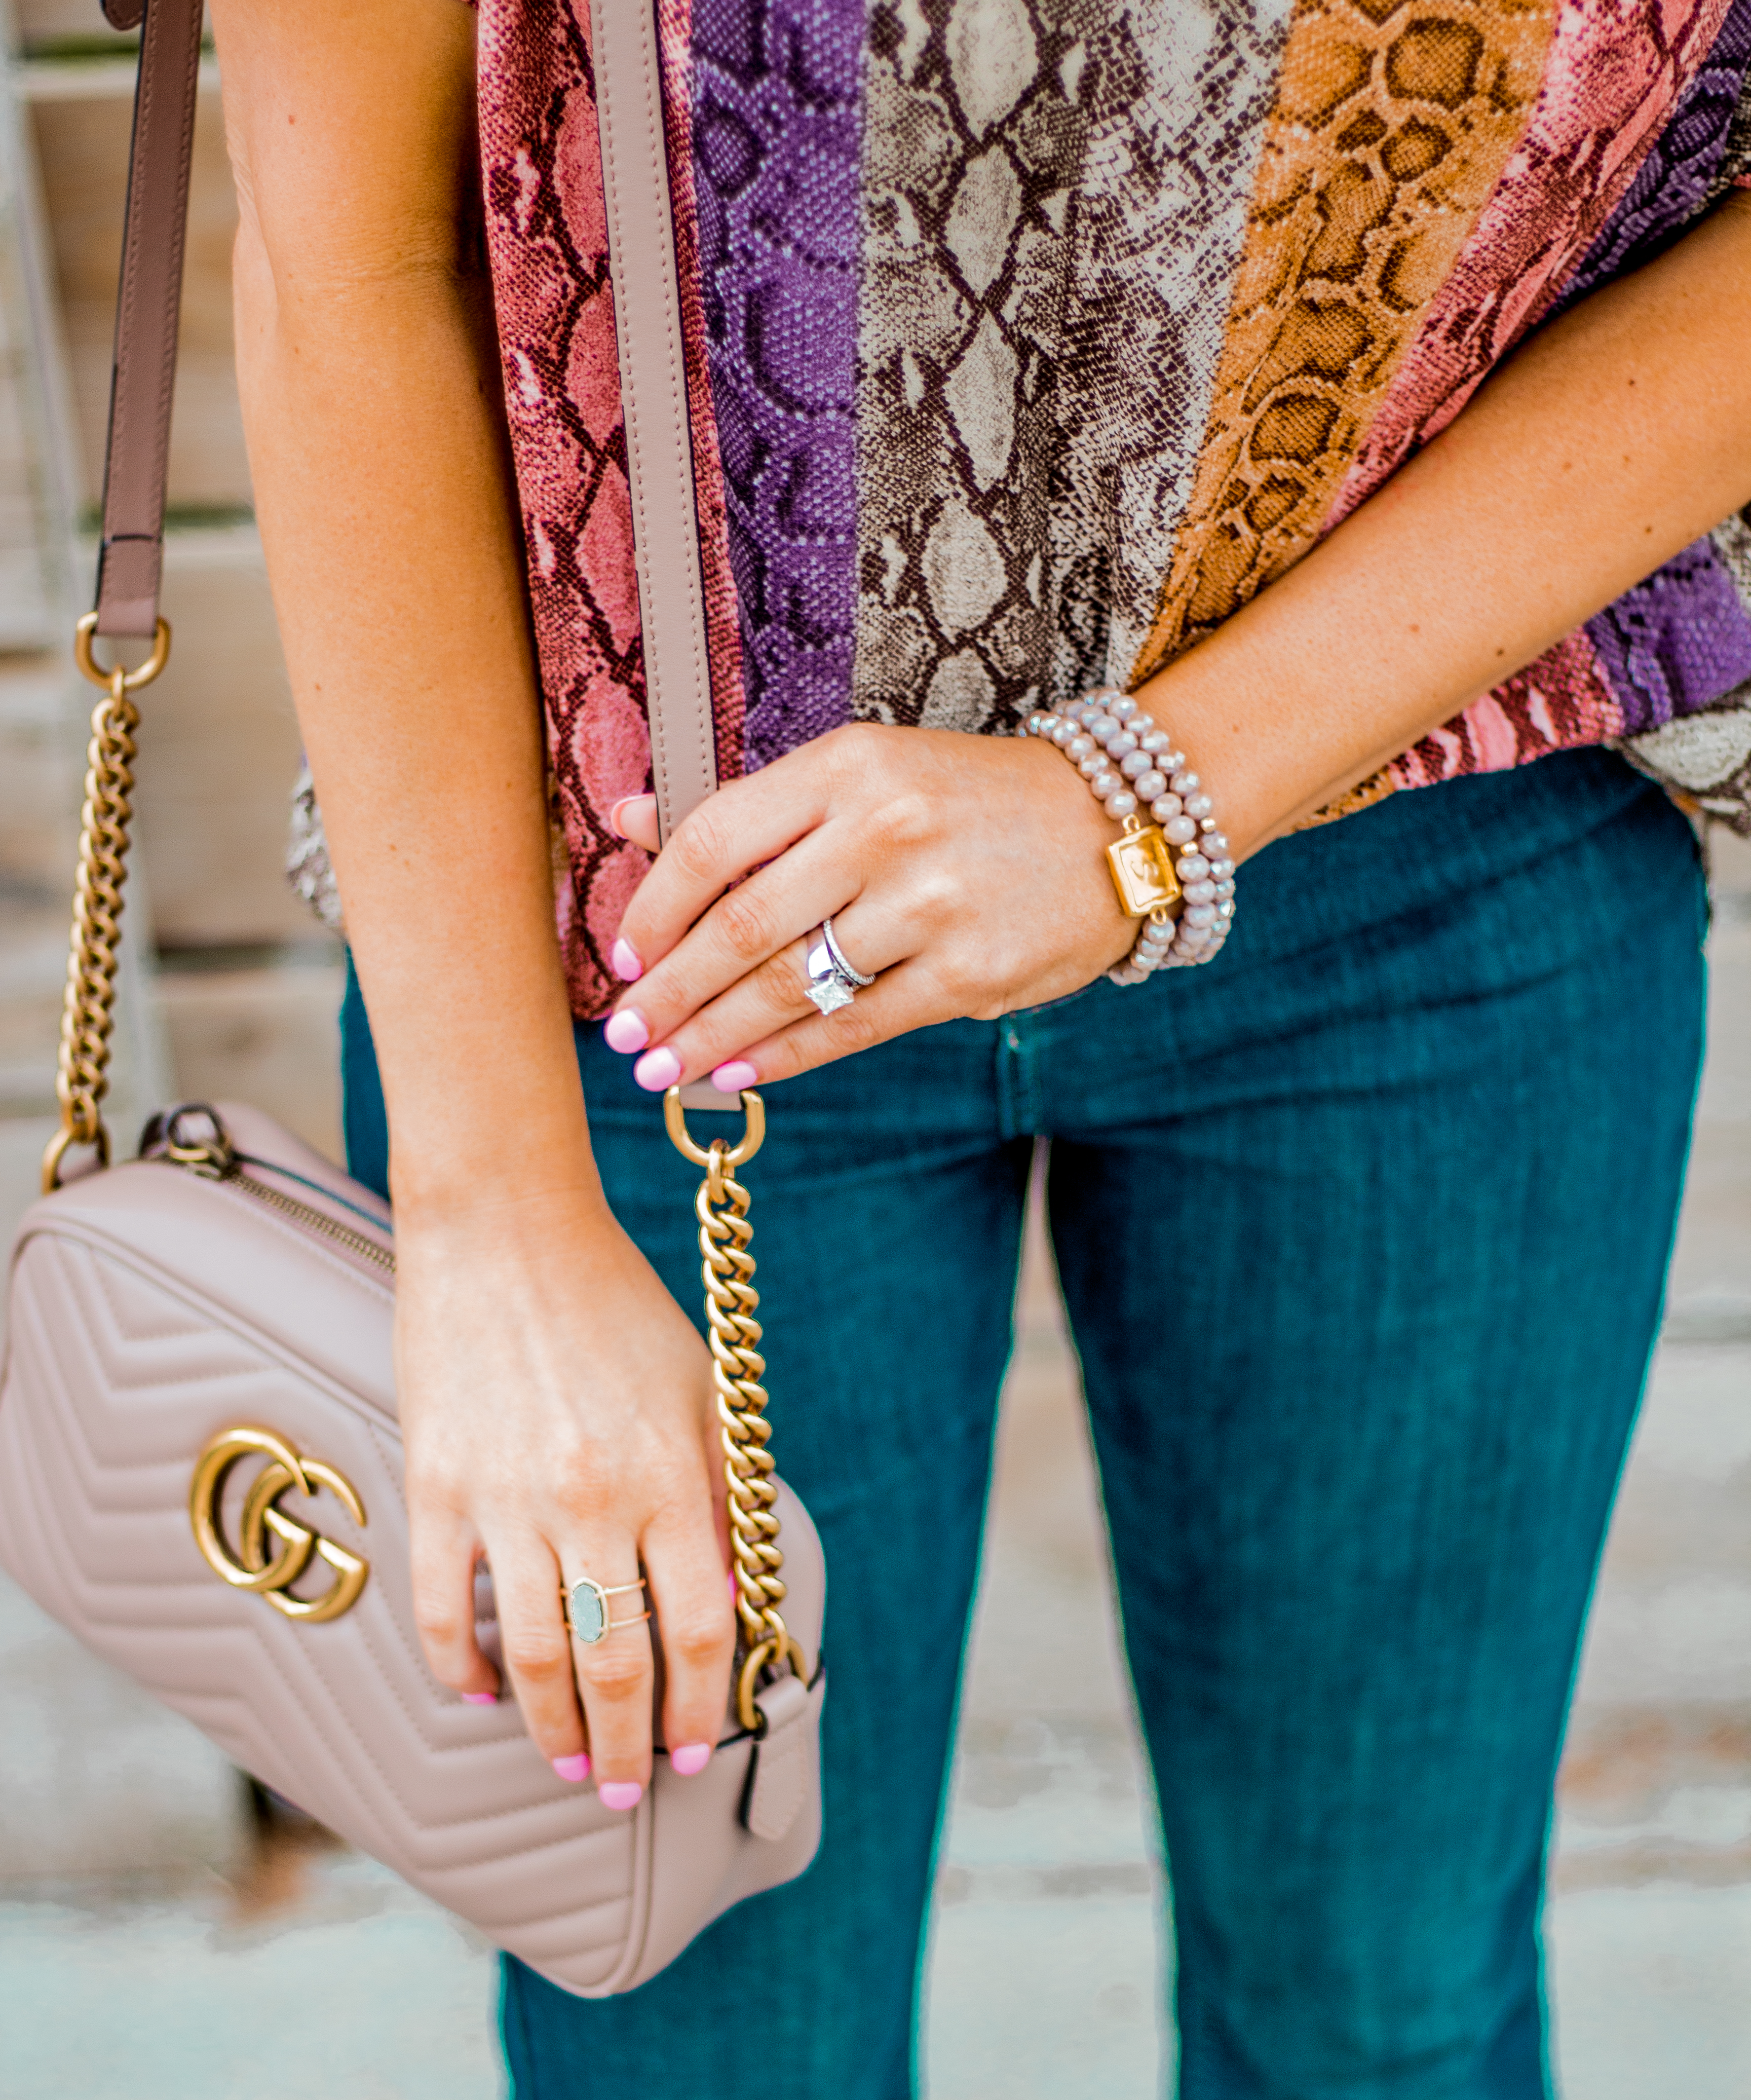 Women's Fashion - Snakeskin Print - Snakeskin Trend - Spring Fashion Trend - Omaha Fashion Blog - Boho Vibes - Flare Jeans - Gucci Bag - Taudrey Jewelry - Sabby Style Bracelet Set